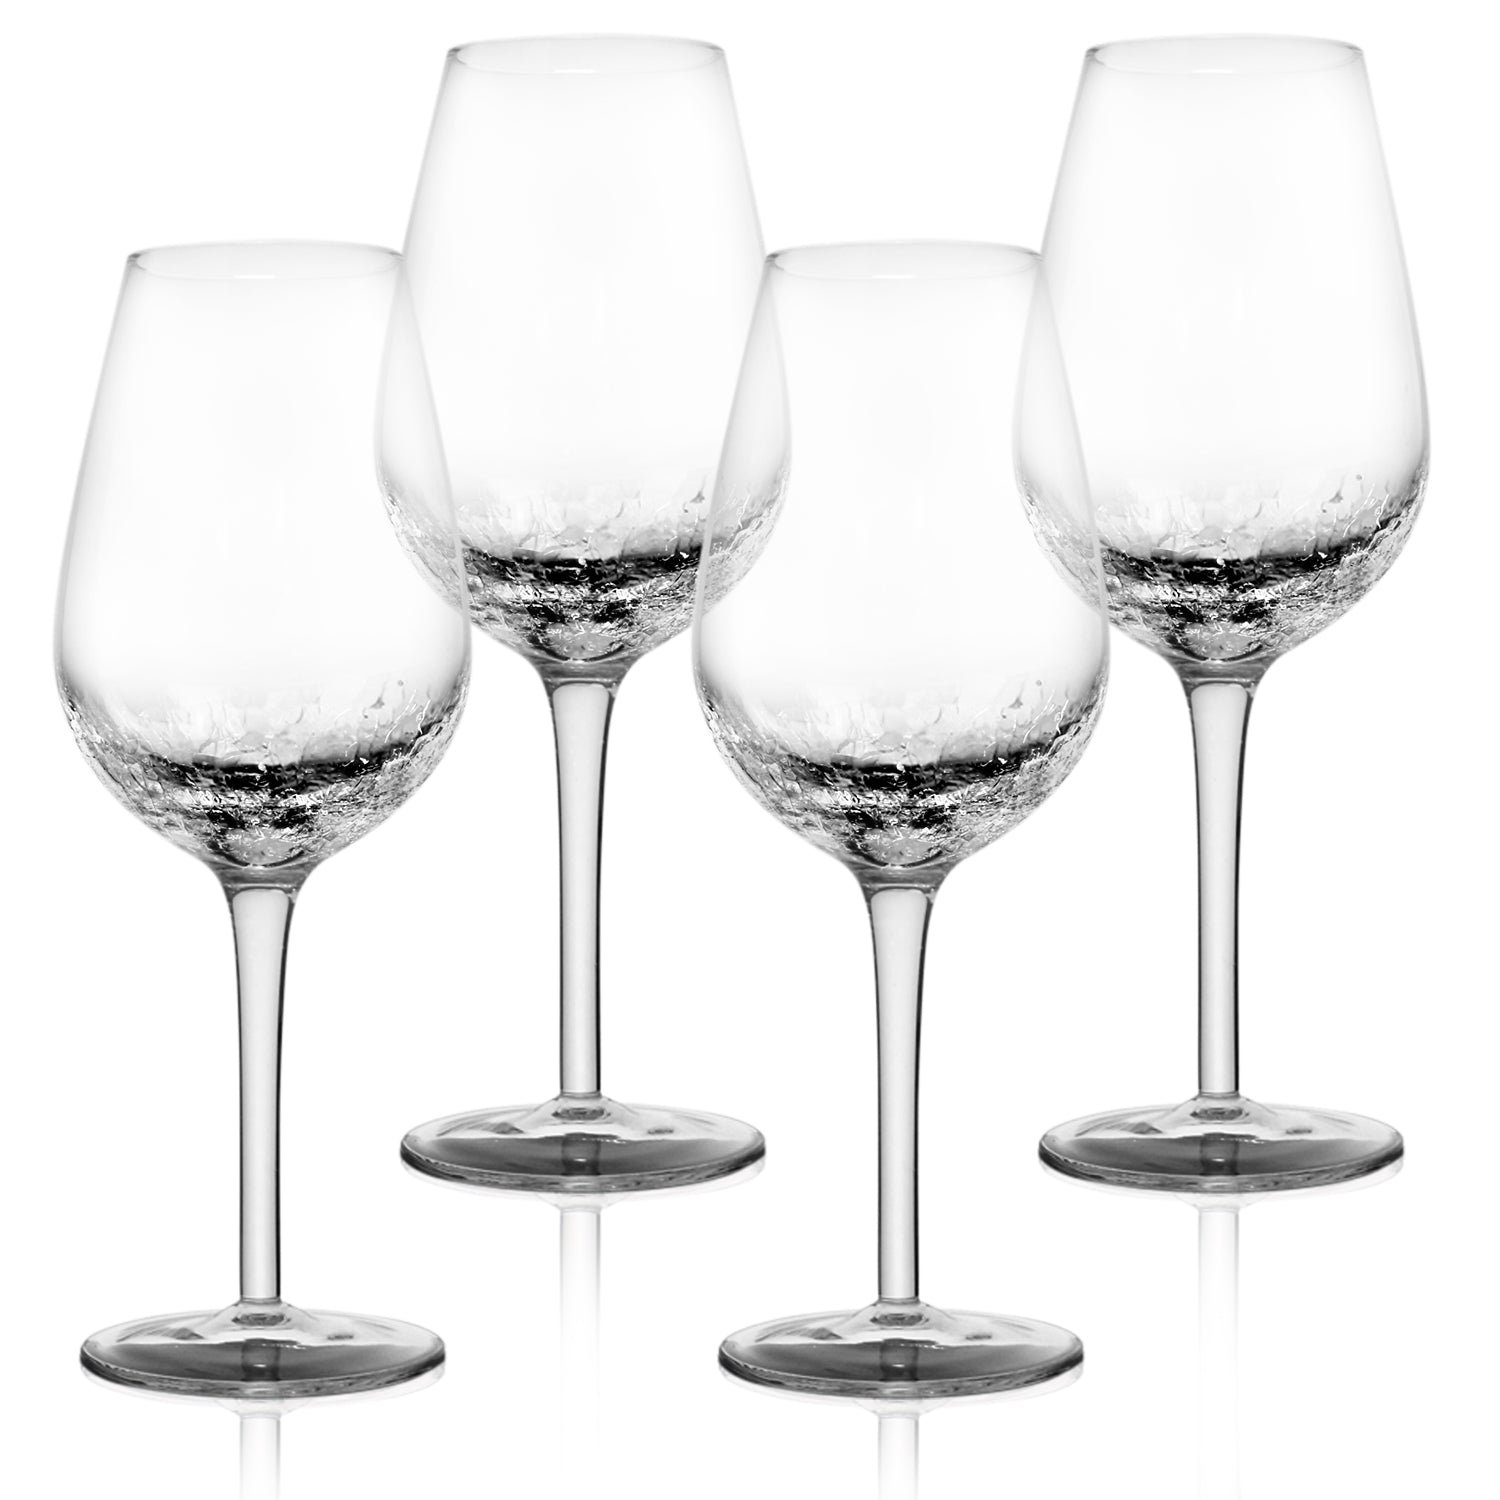 4 Pack Crackle Wine Glasses 14oz- Elegant Partially Crackled Bowl- Long, Thick Stem & Stable Base- Unique Handmade Design Sparkles Like Fractured Ice- Iridescent Wine Glasses set for Red & White Wine